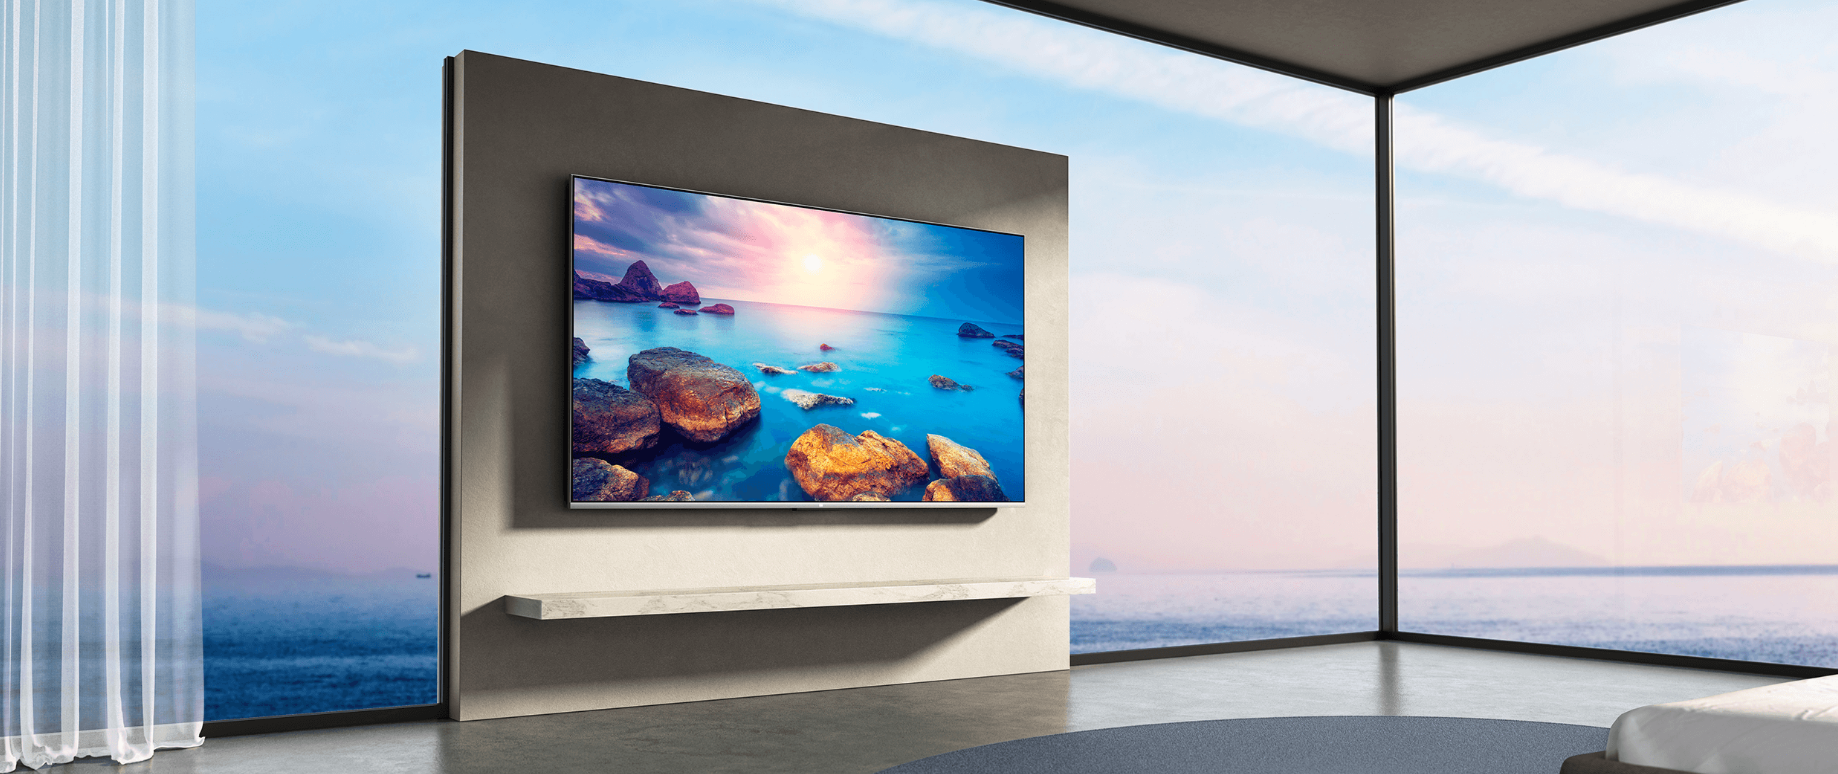 Mi QLED TV 75 Ultra-HD Smart Android TV – Specification And Features